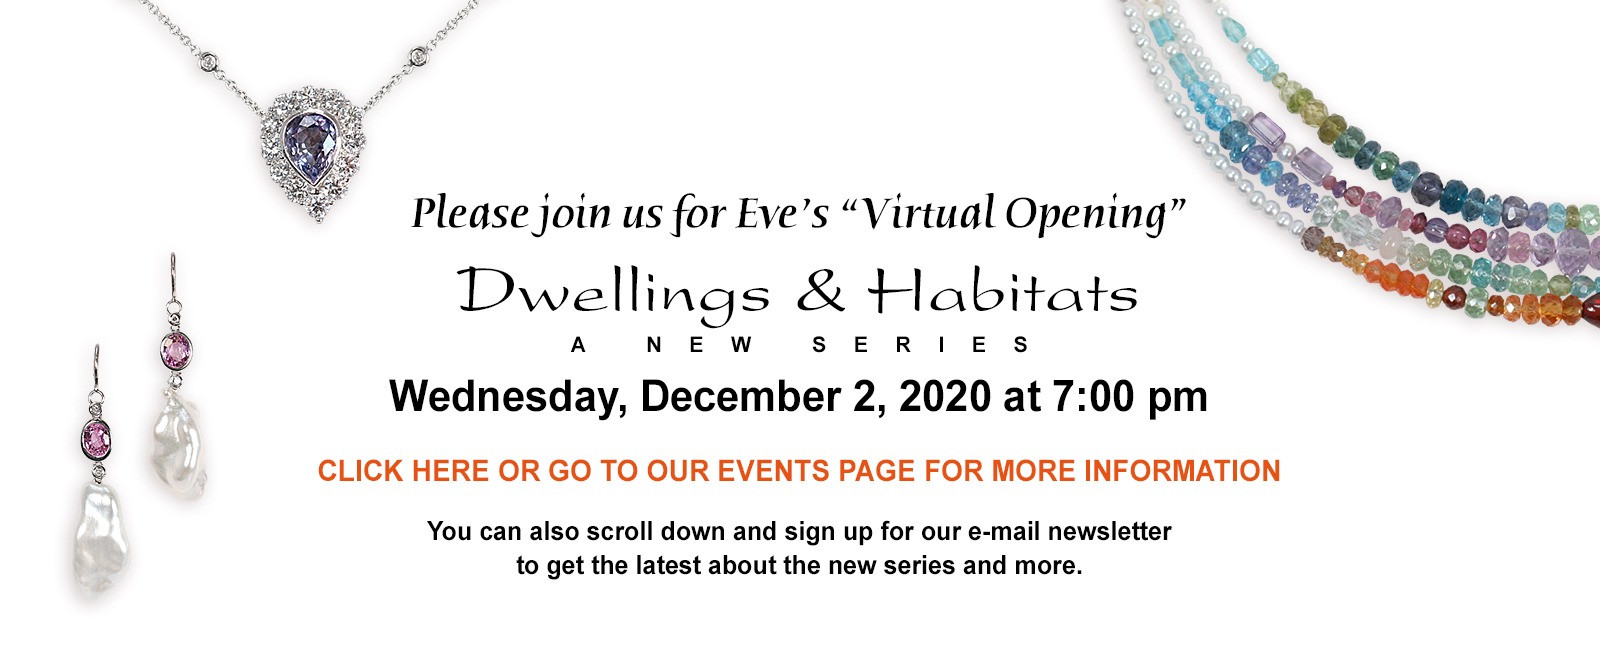 "Join us on Dec. 2 at 7pm for Eve's online opening event for ""Dwellings & Habitats"" her new fine art jewelry series."